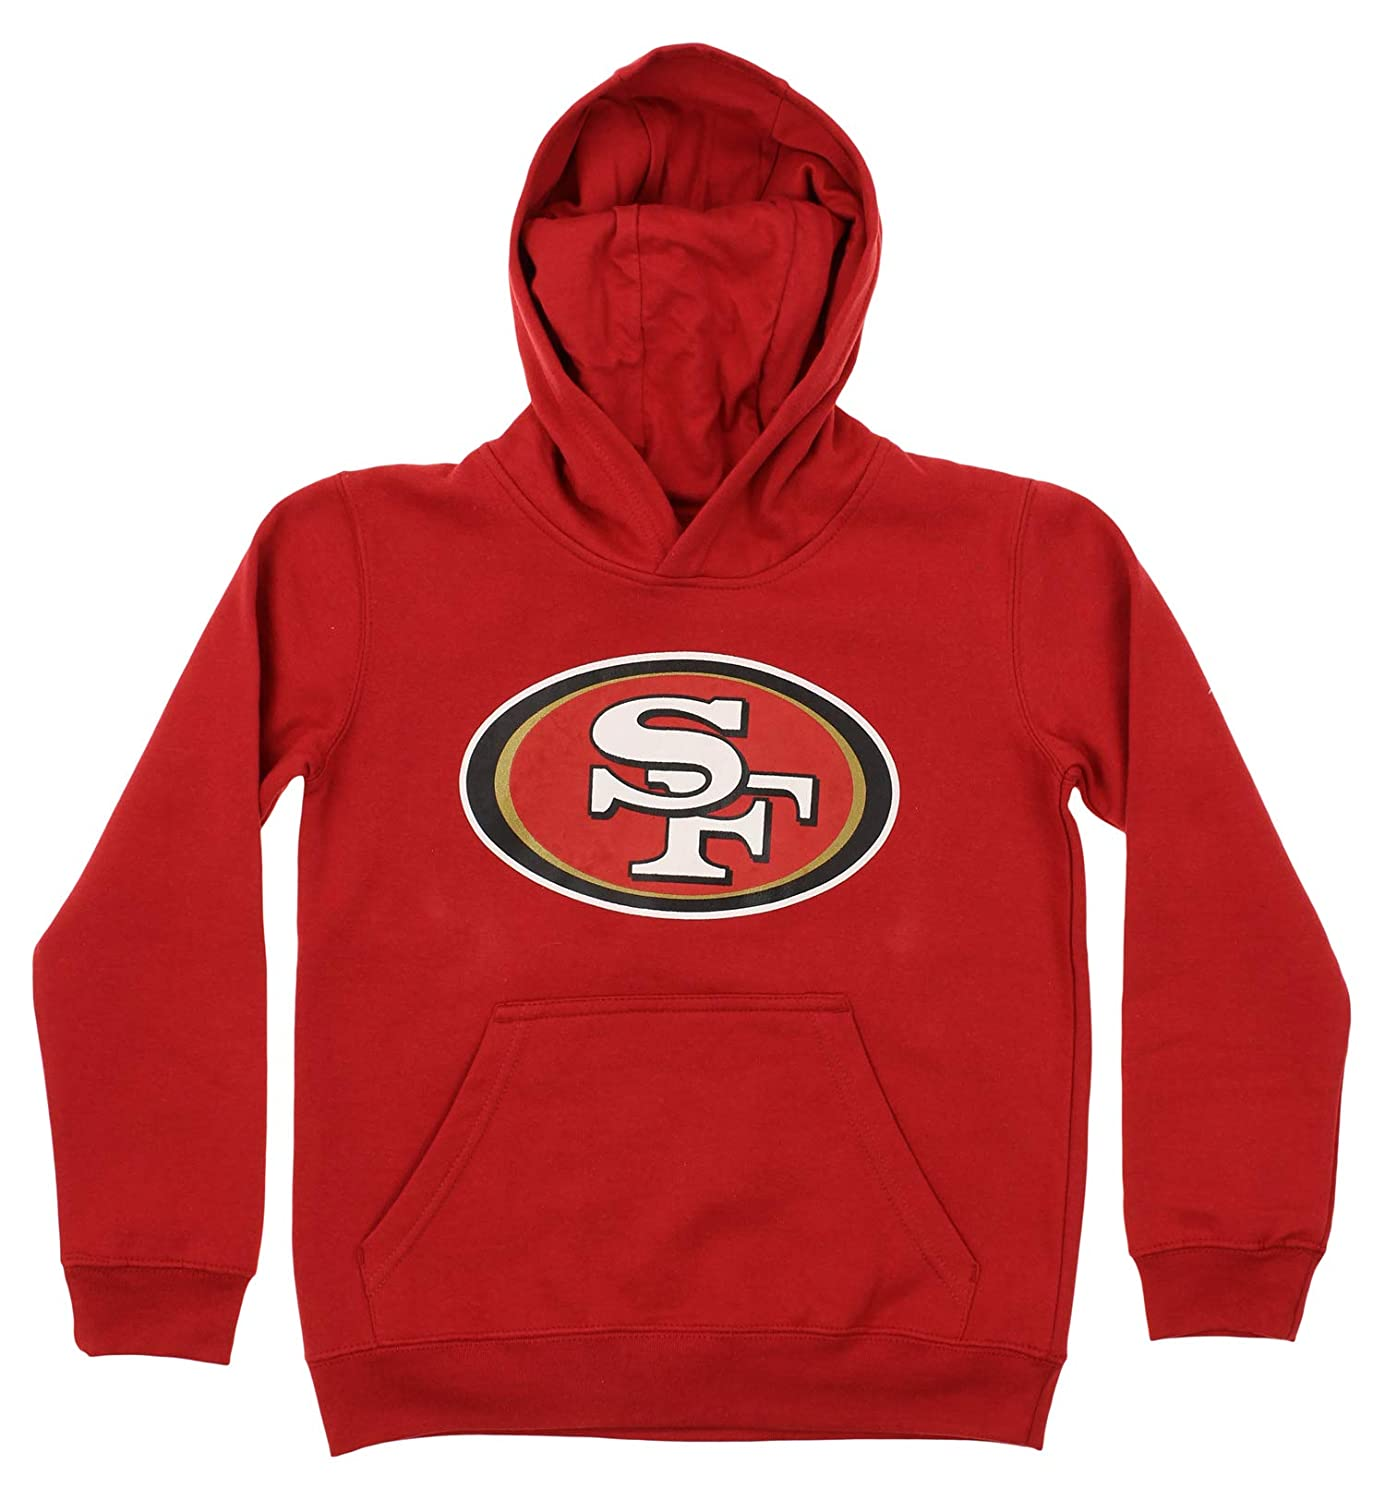 Outerstuff NFL Youth Boy's (8-20) Primary Logo Team Color Fleece Hoodie, Team Variation